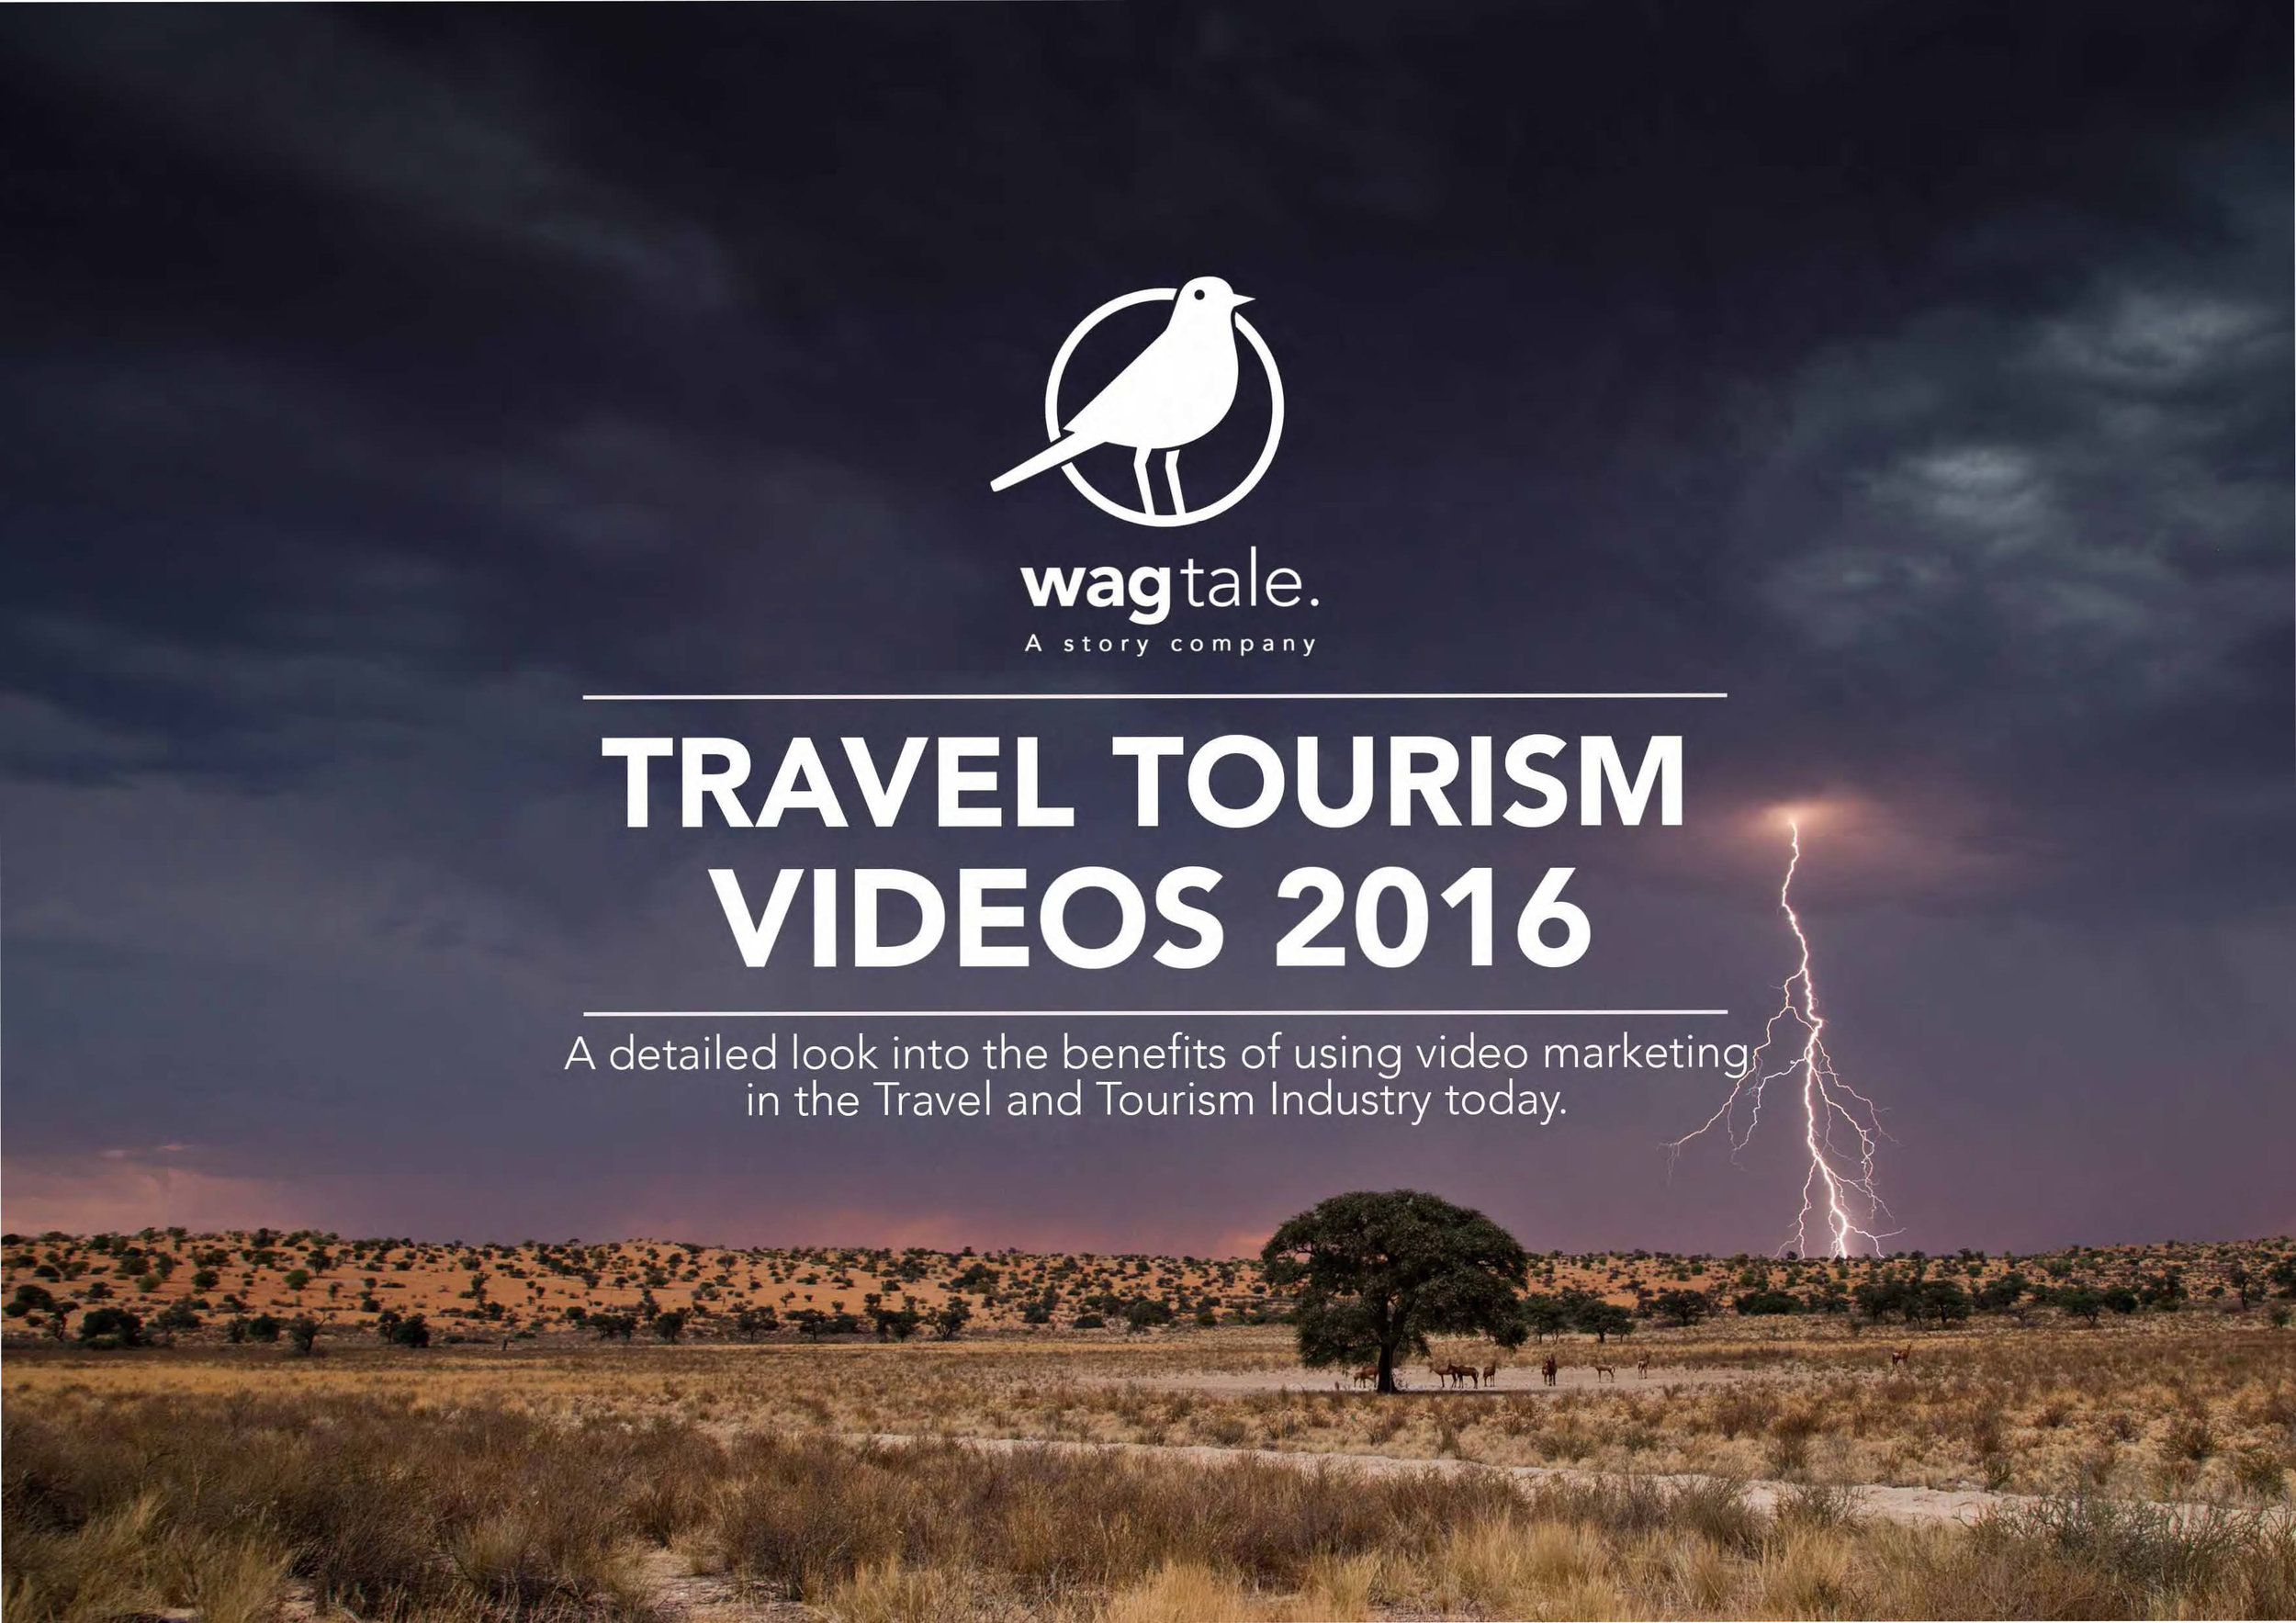 Wagtale Travel&Tourism Proposal-1.jpg